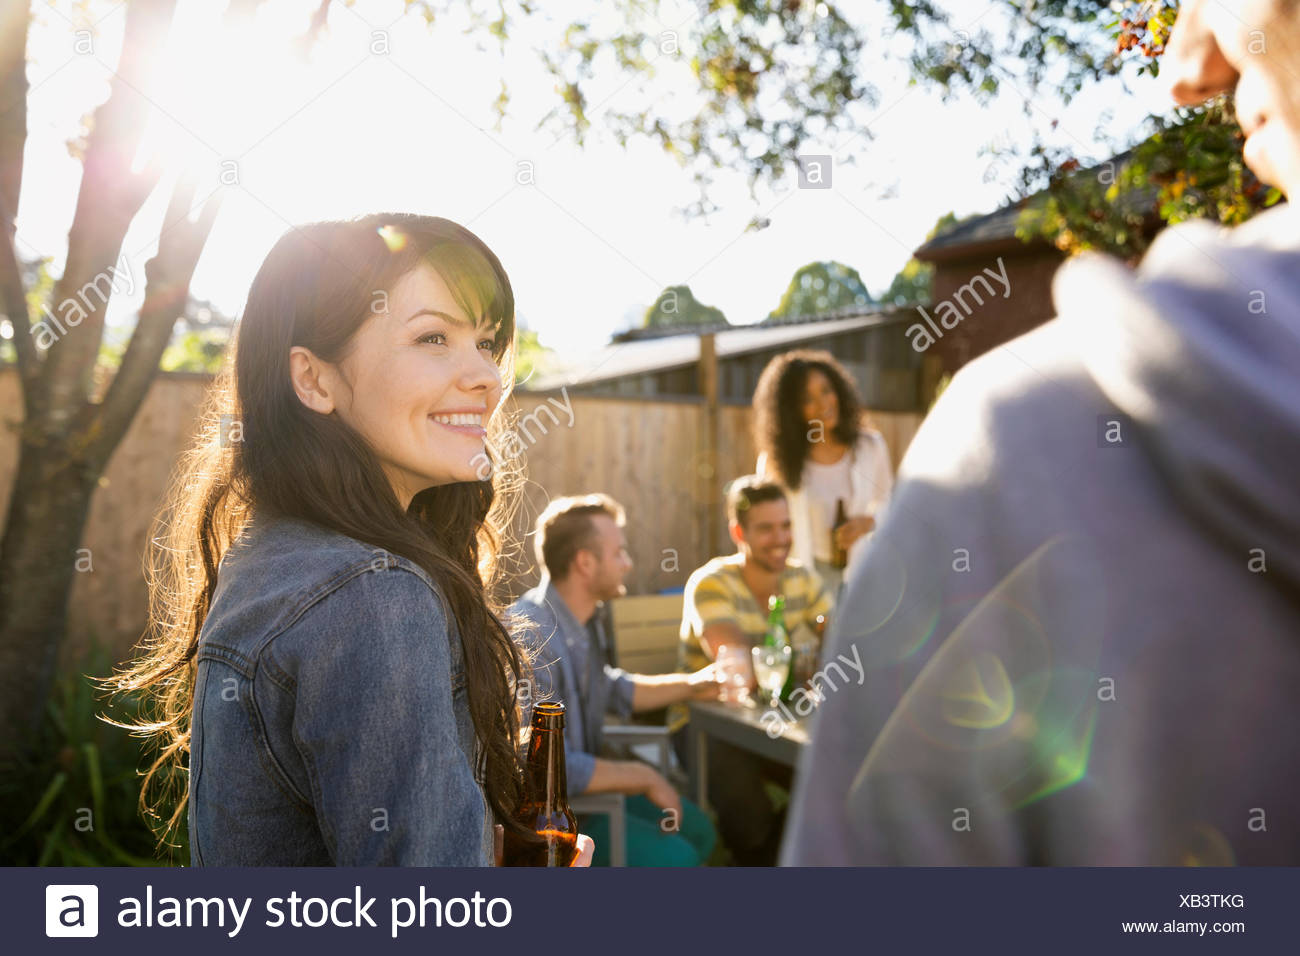 Friends hanging out at backyard barbecue - Stock Image